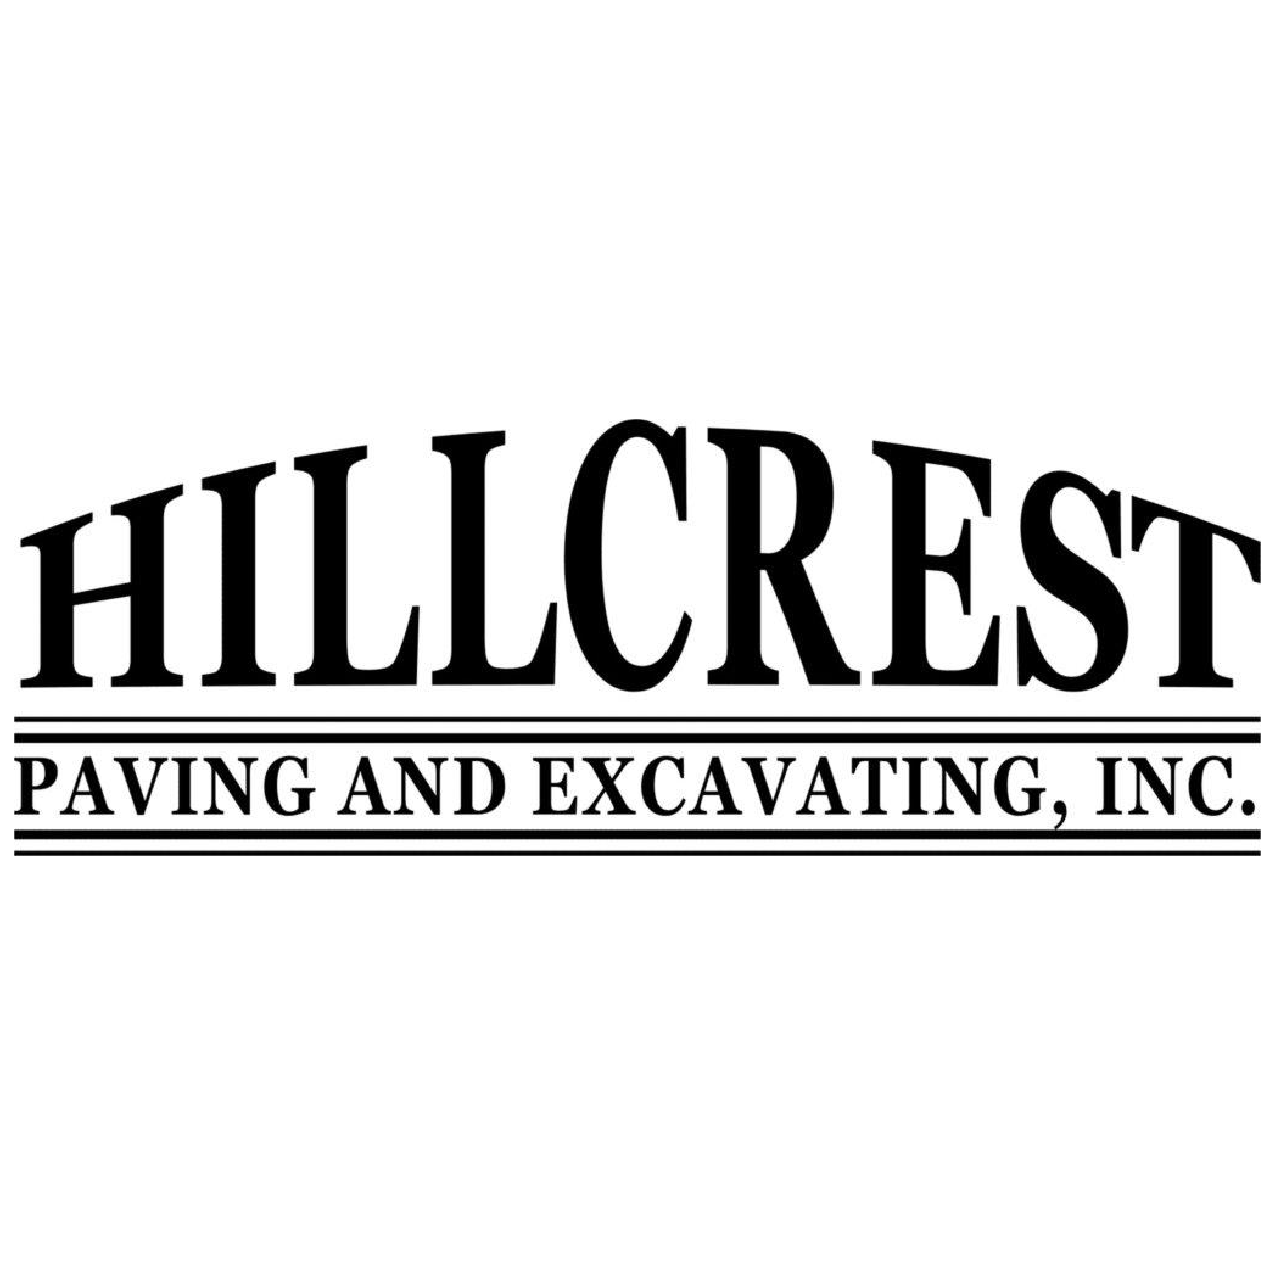 Hillcrest Paving & Excavating, Inc.